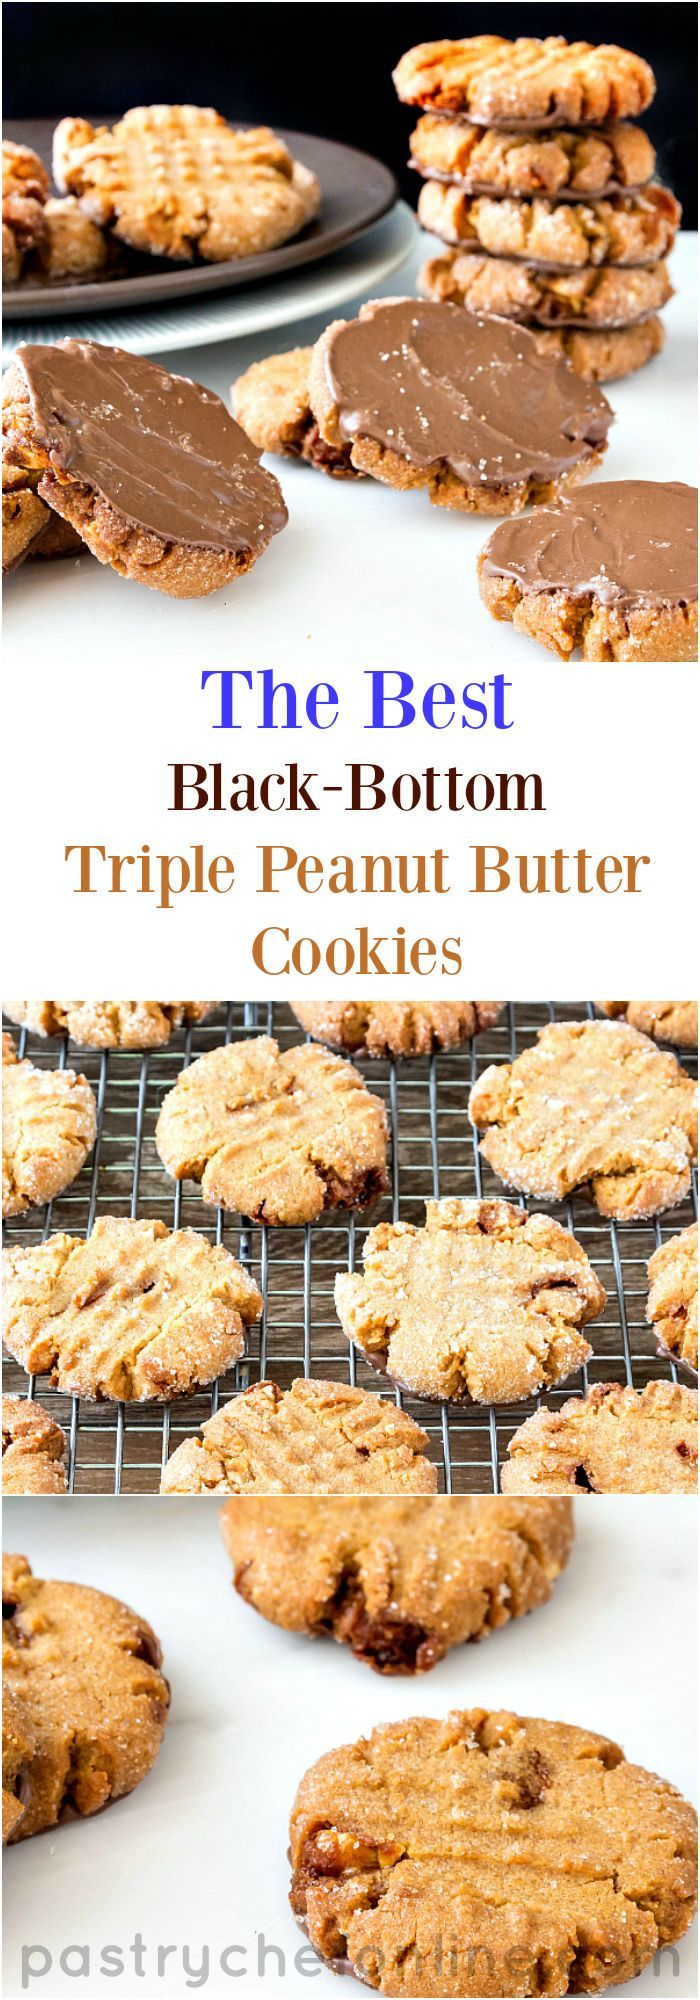 I present unto you the best black bottom triple peanut butter cookies in the world! How does this peanut butter cookie recipe end up with so much peanutty flavor? Natural peanut butter, peanut powder and chopped peanut brittle. These are seriously peanutty, just a touch chocolatey, and seriously delicious!   http://pastrychefonline.com